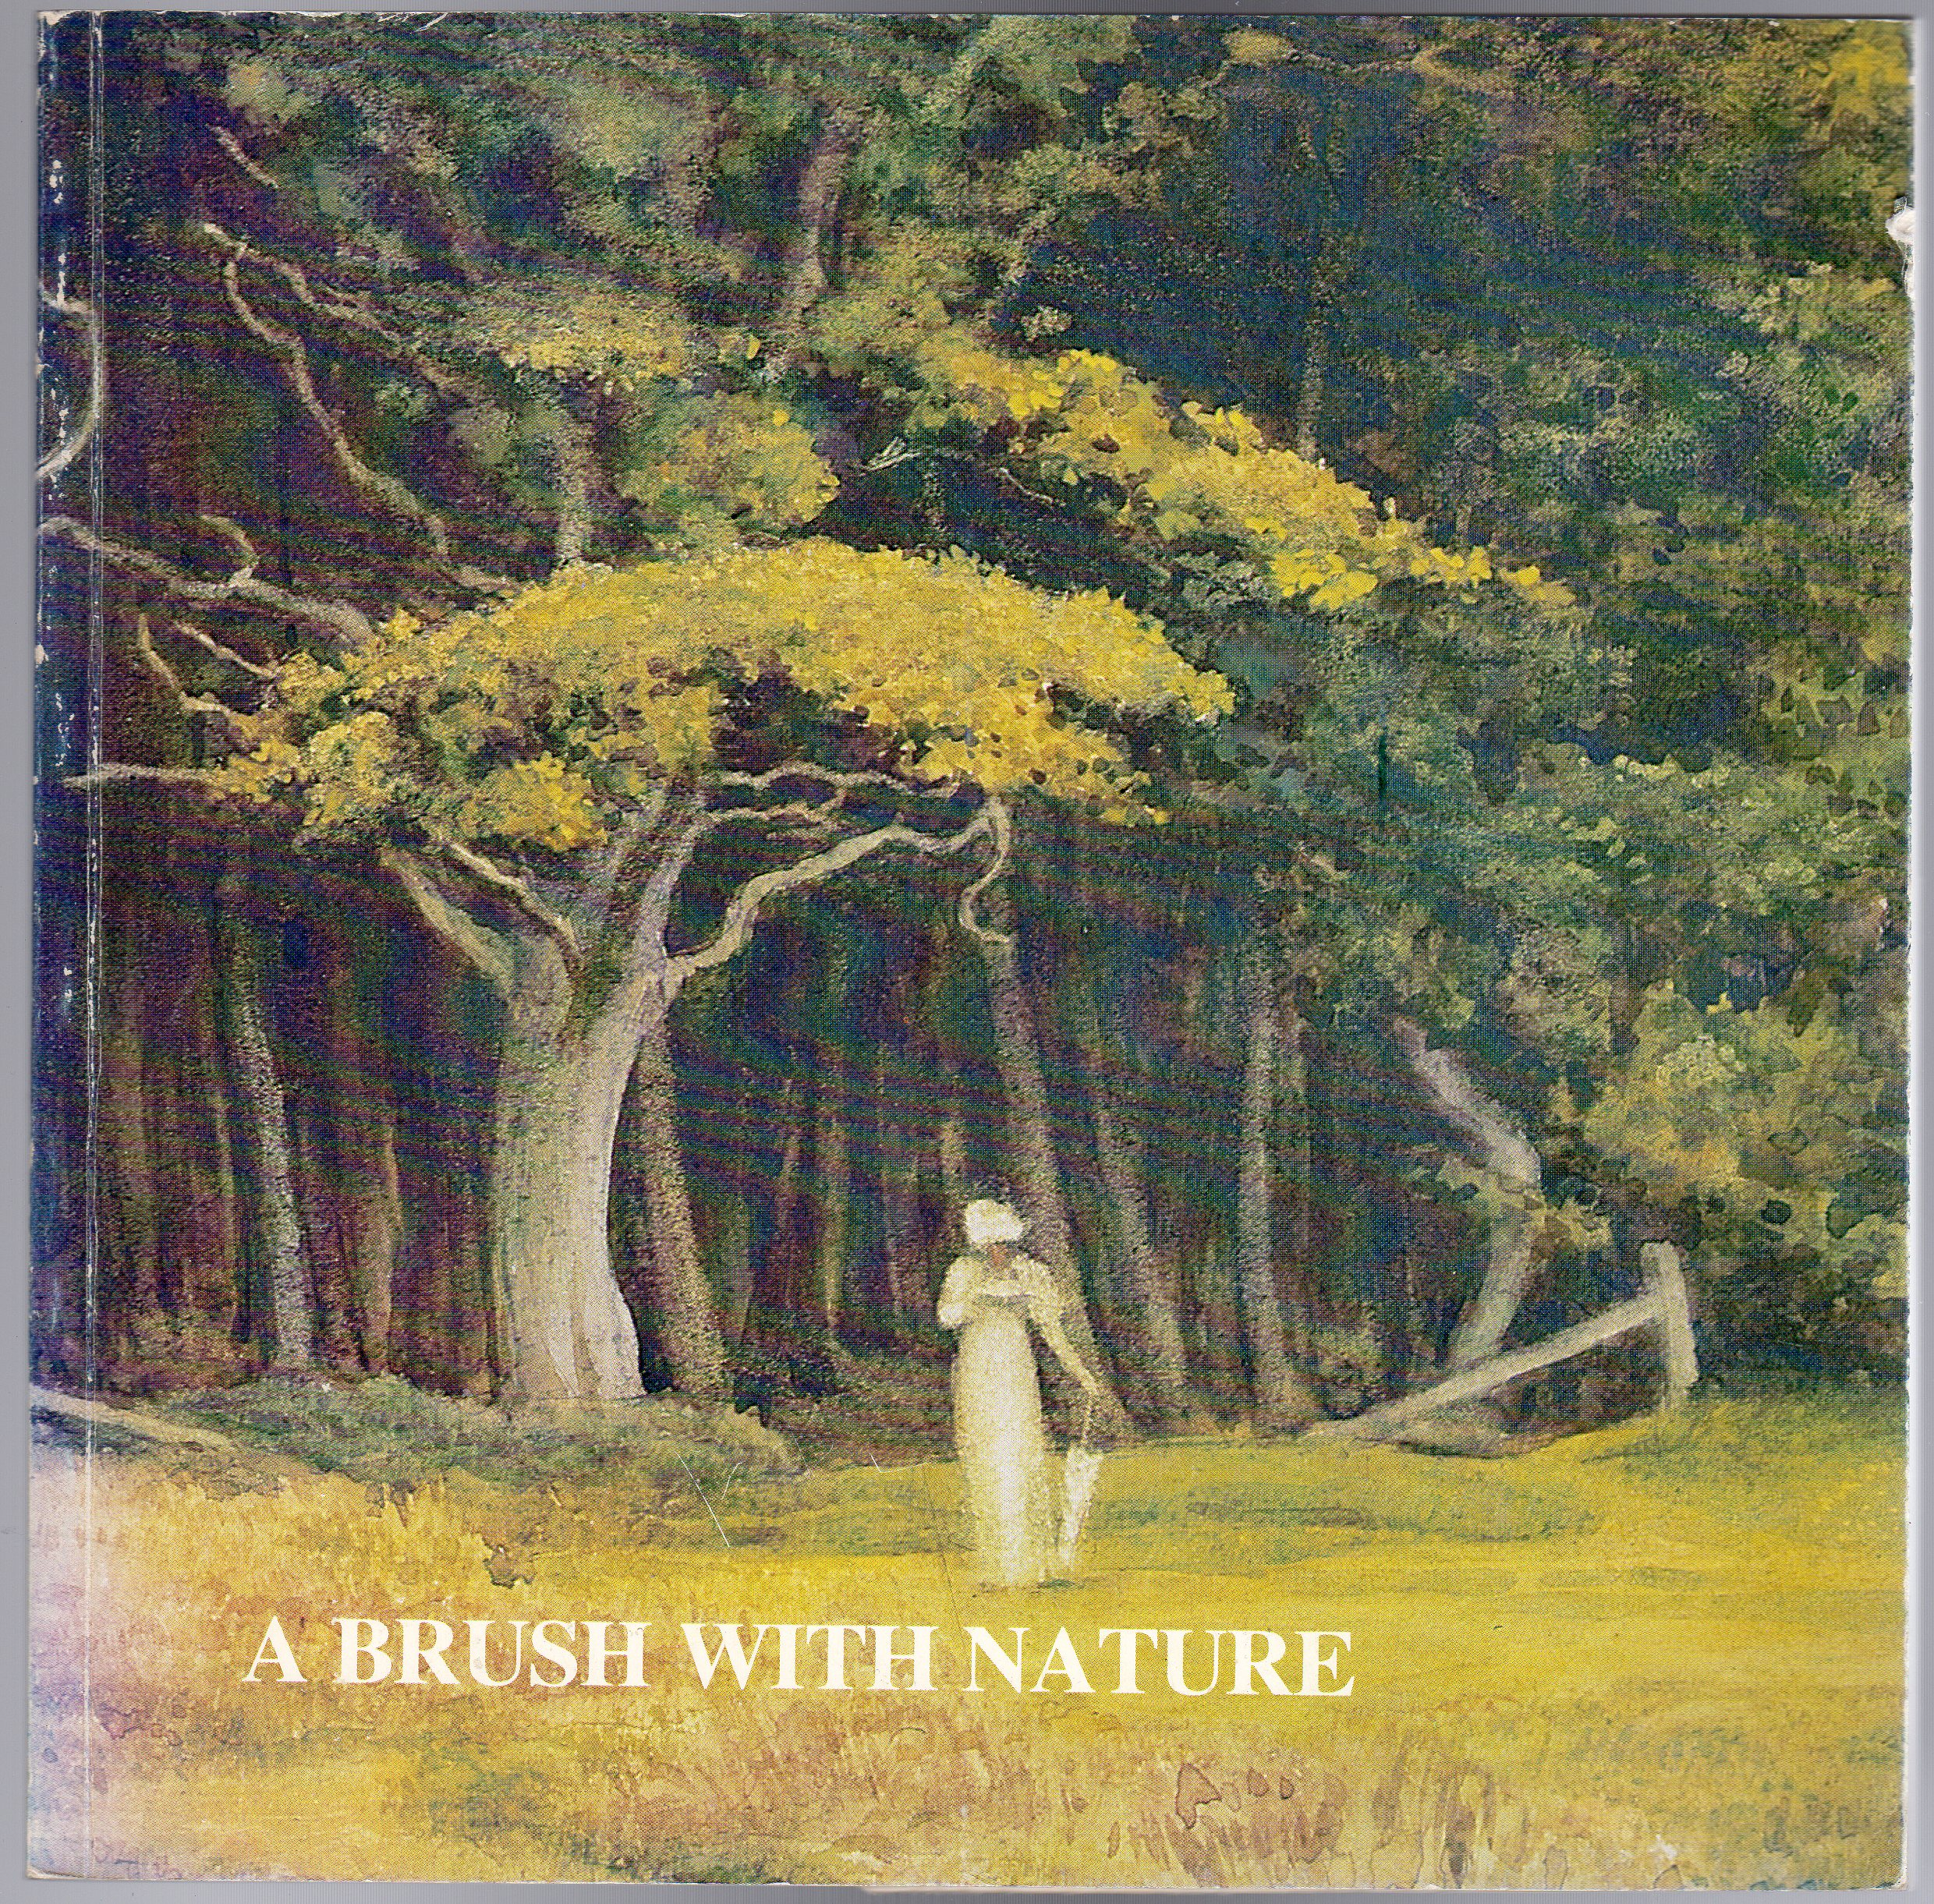 Image for A Brush with Nature, An Exhibition of Landscape Paintings and Nature Studies